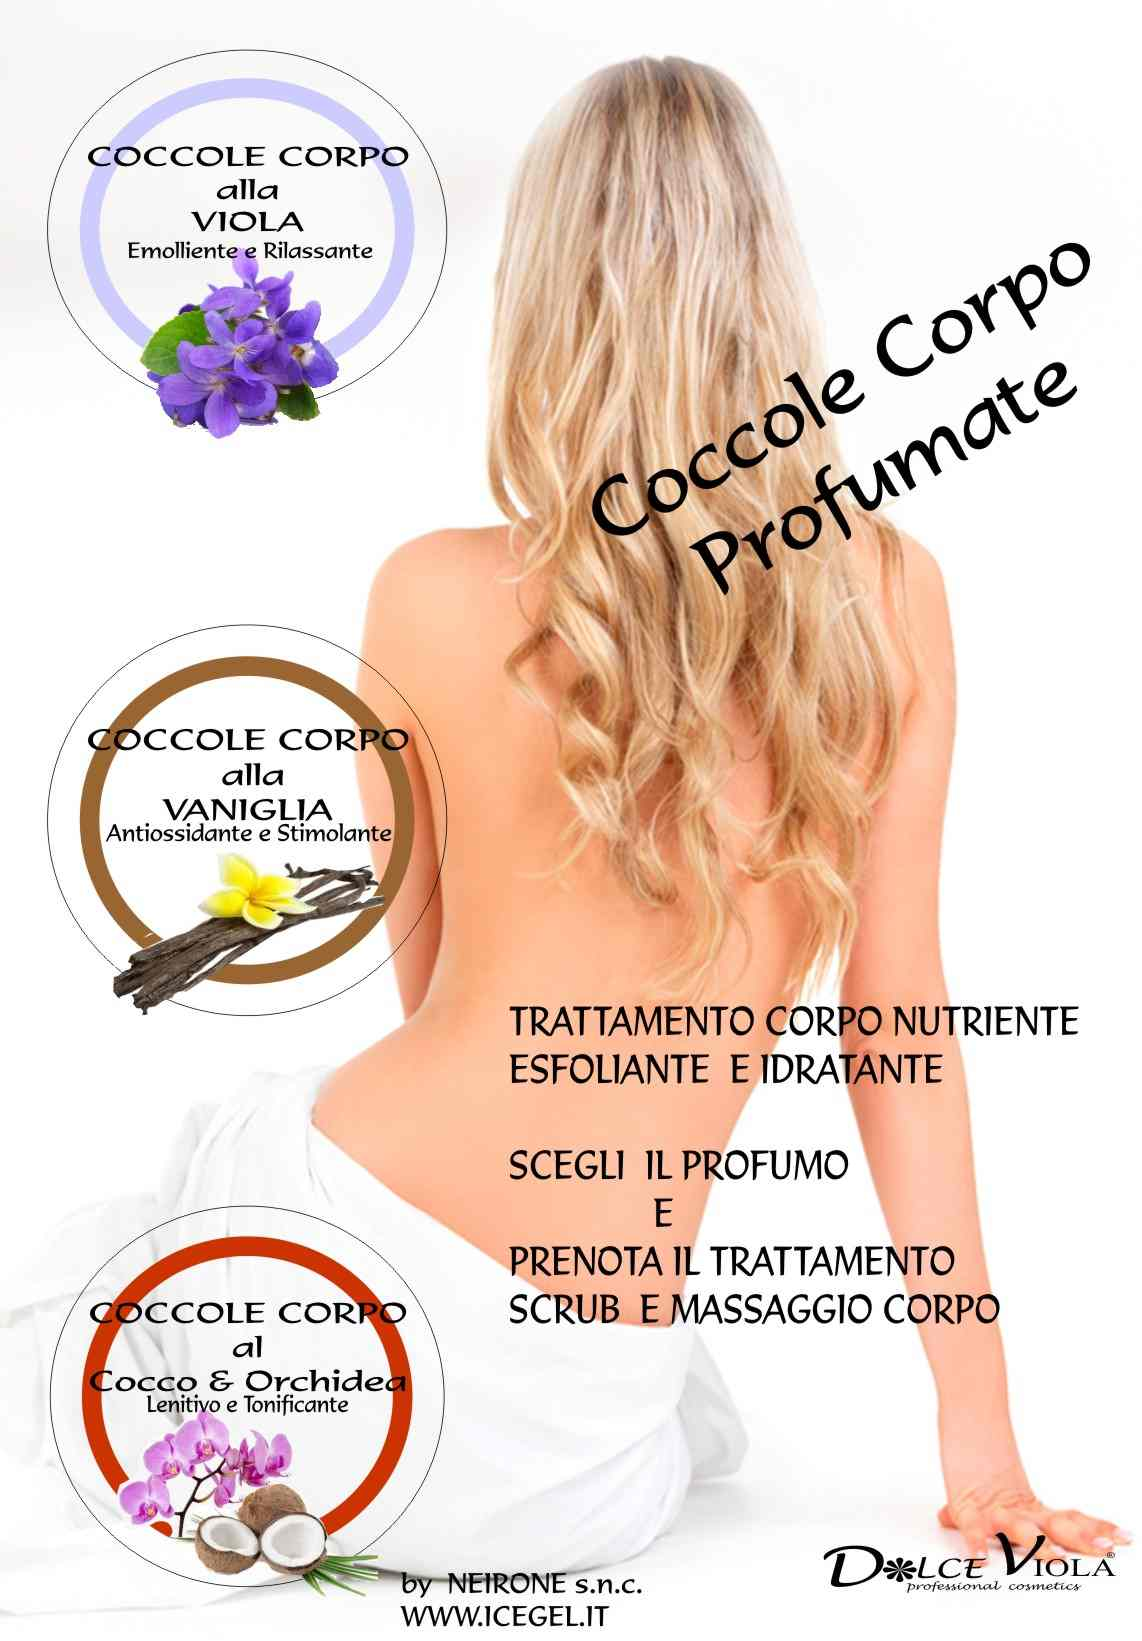 POSTER COCCOLE